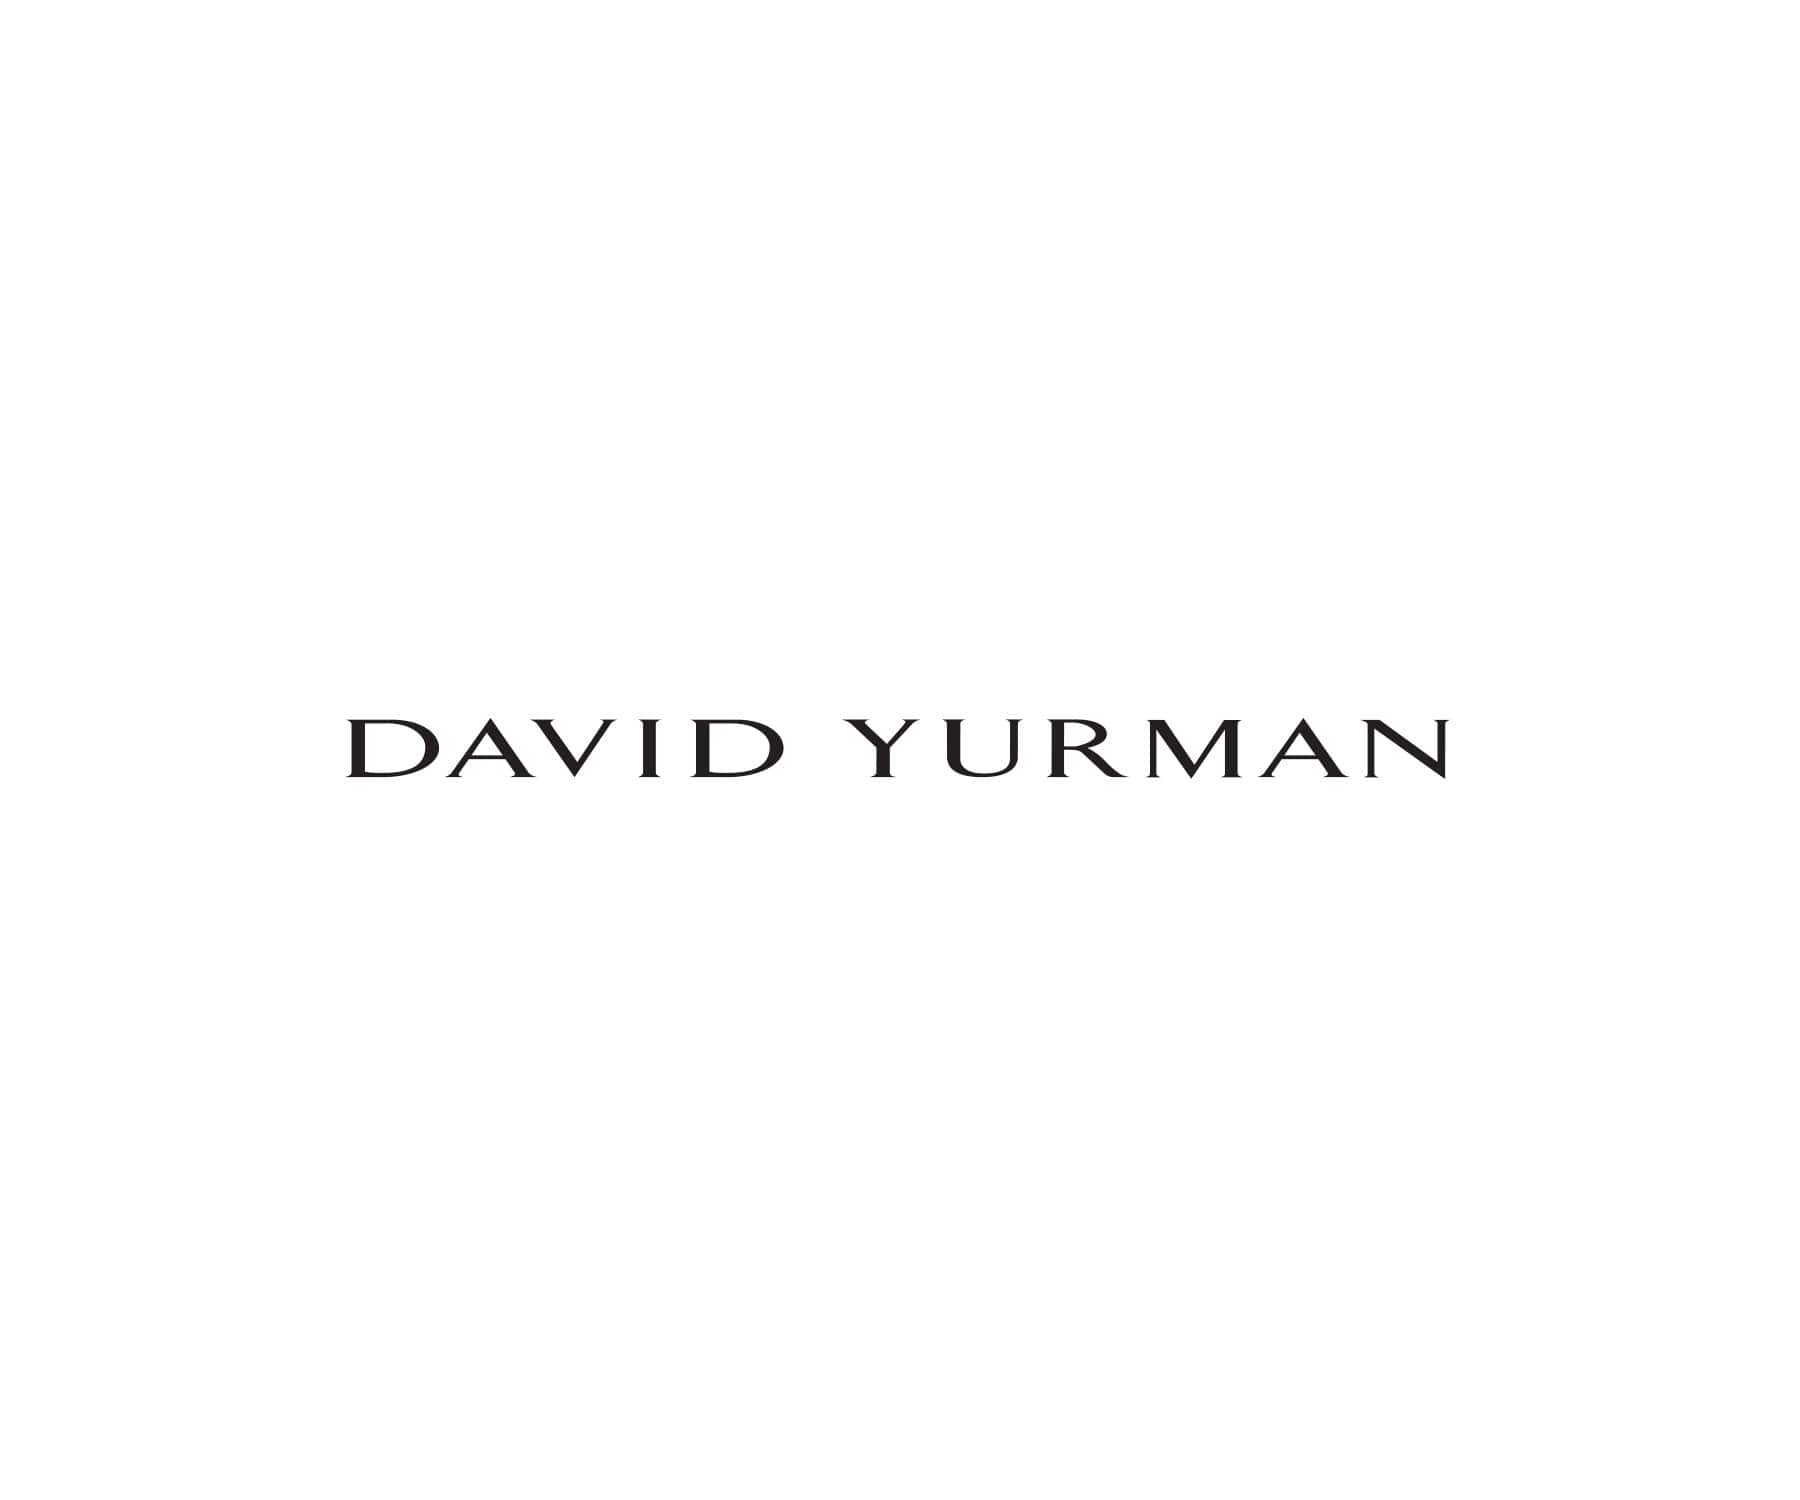 David Yurman men's Chain curb chain bracelets in 18K yellow or rose gold, or sterling silver with or without black diamonds, lying flat in a horizontal stack in a ray of light on a white stone.